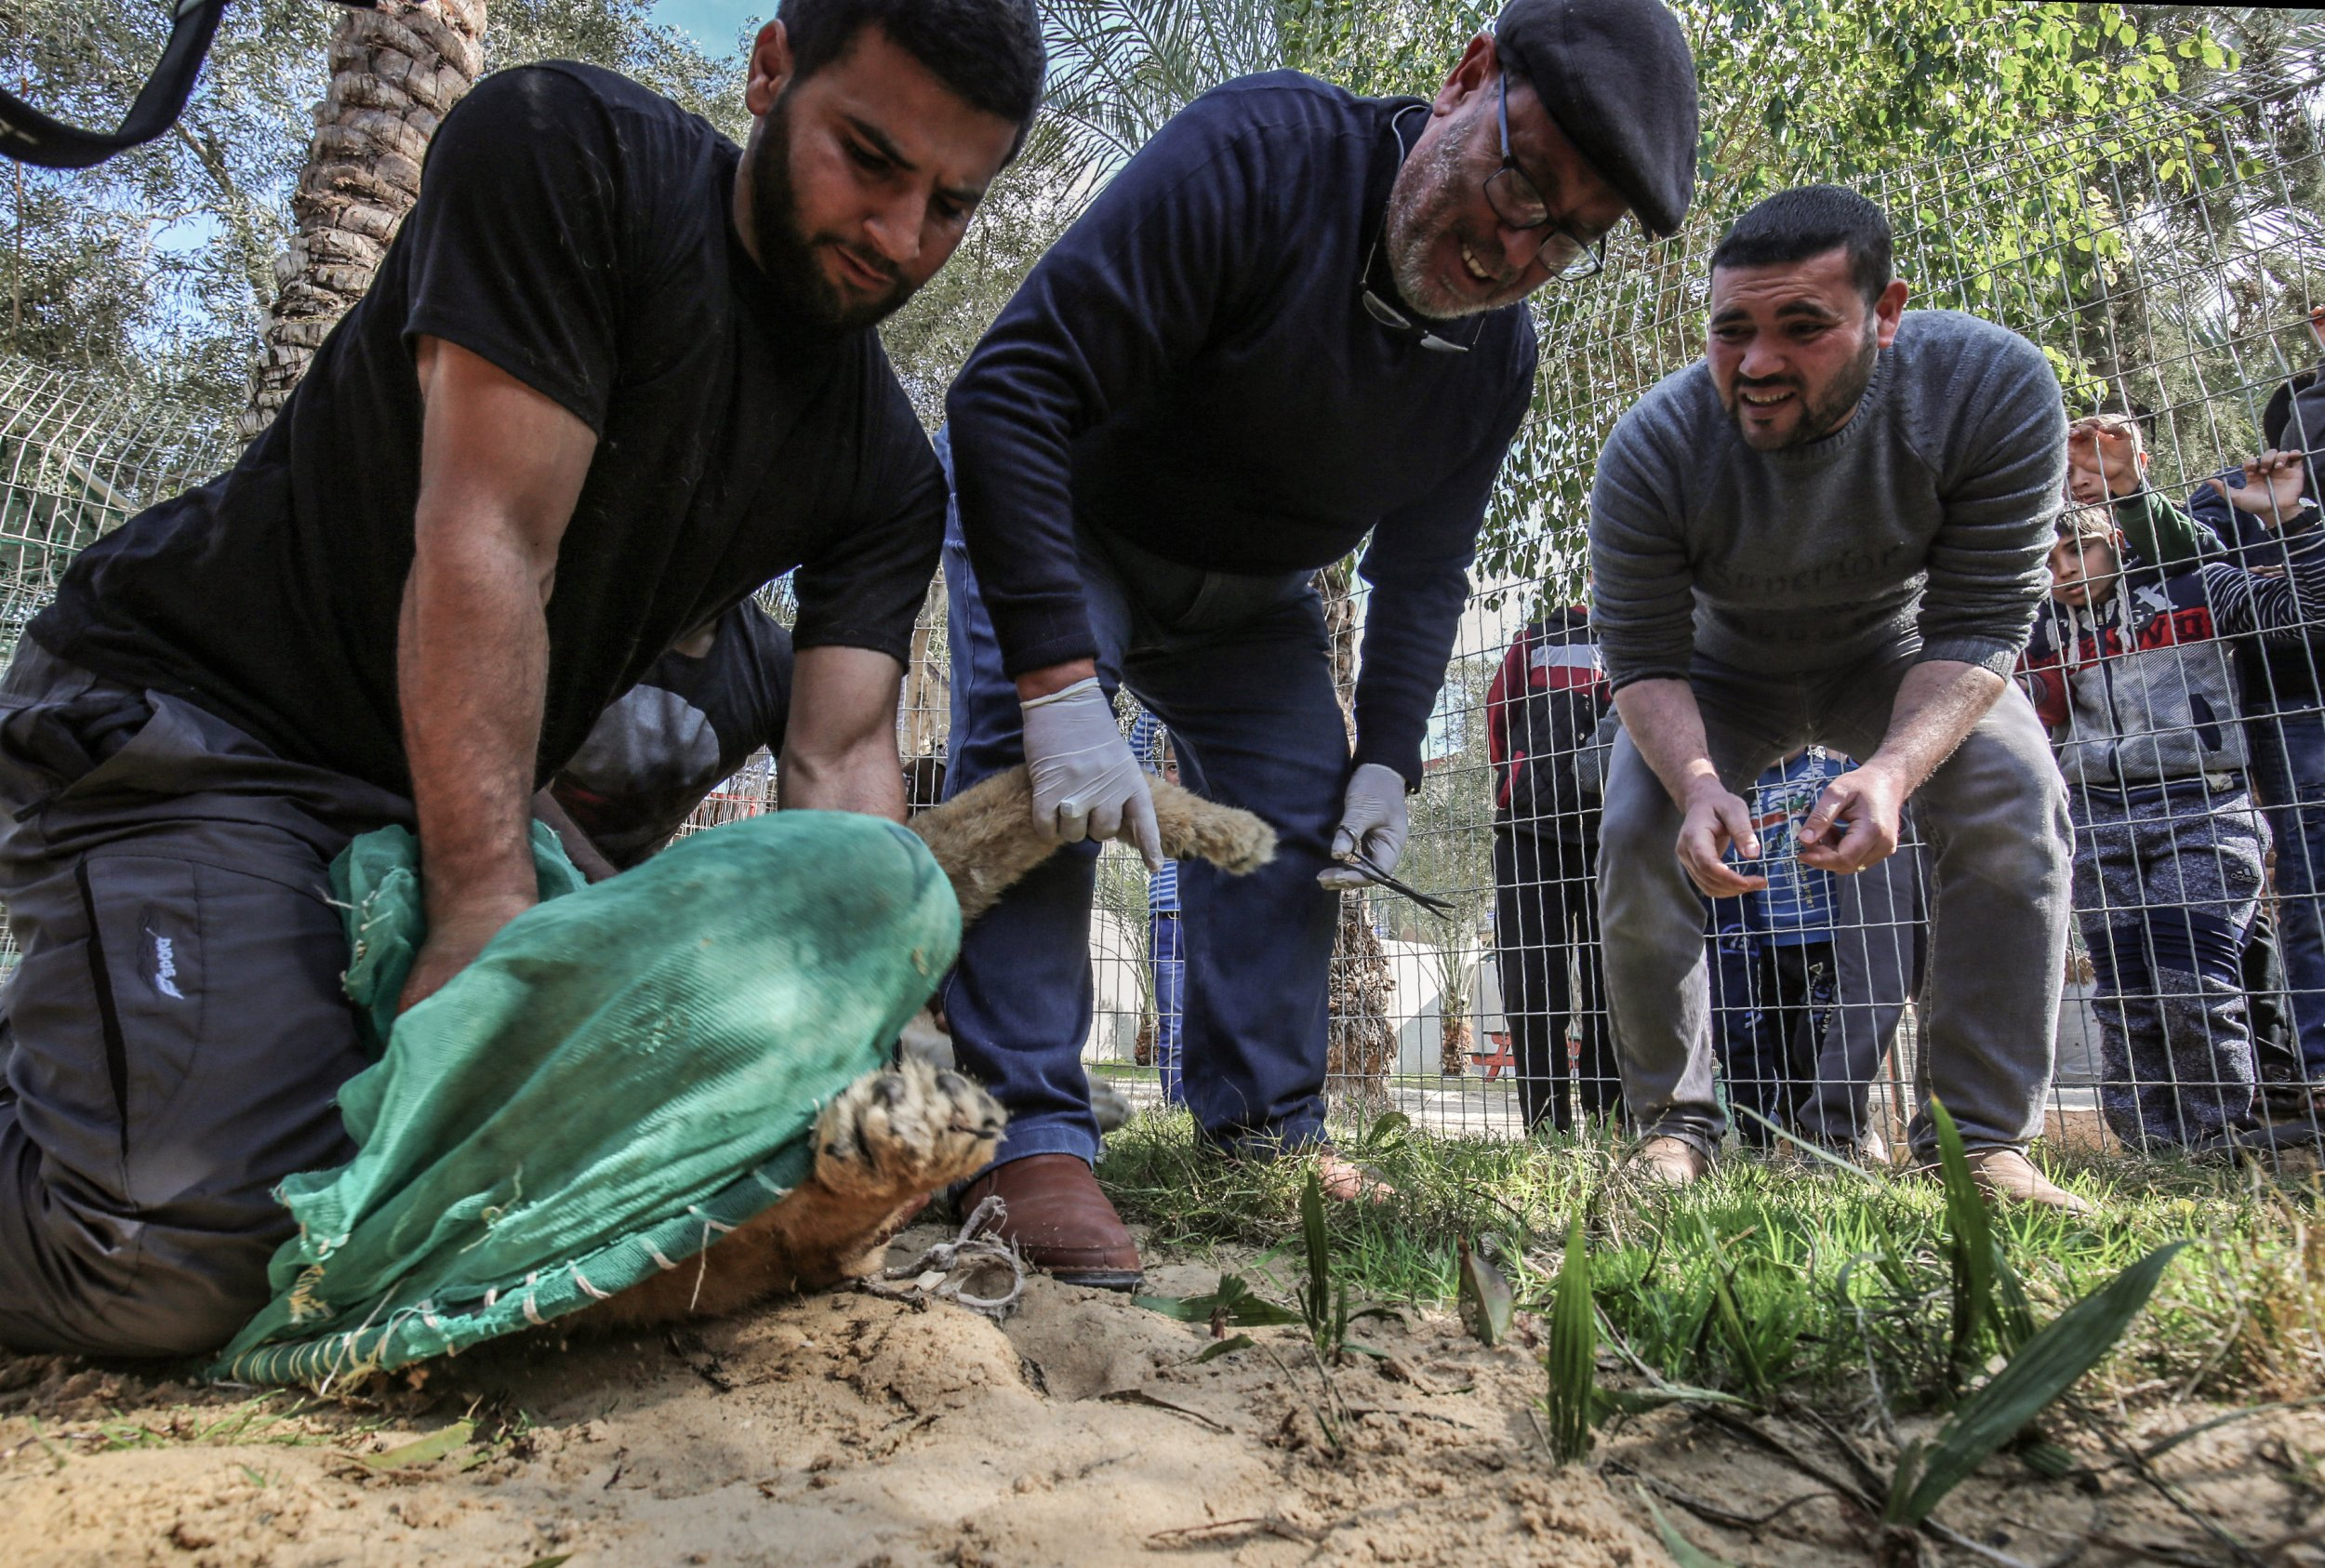 rafah zoo in gaza cut lion's claws so she could play with child visitors